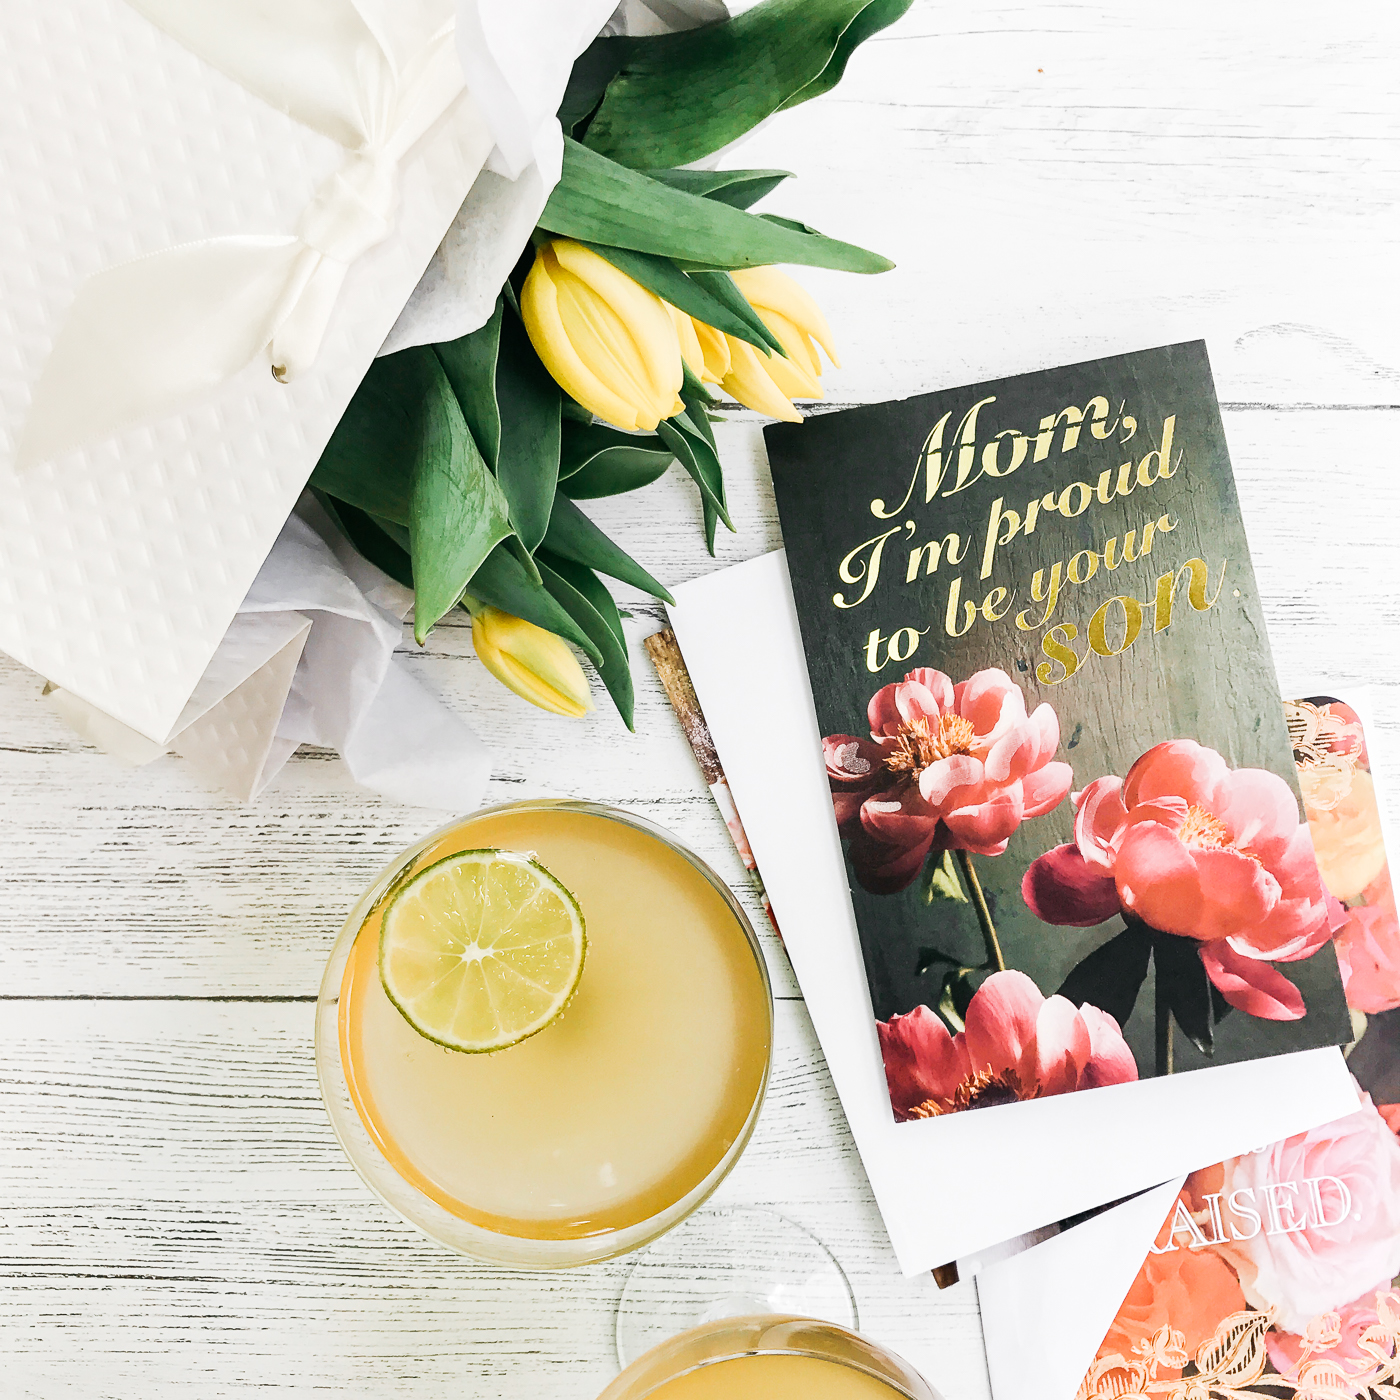 mothers day brunch, mothers day, american greetings mothers day, asparagus quiche, brunch recipes